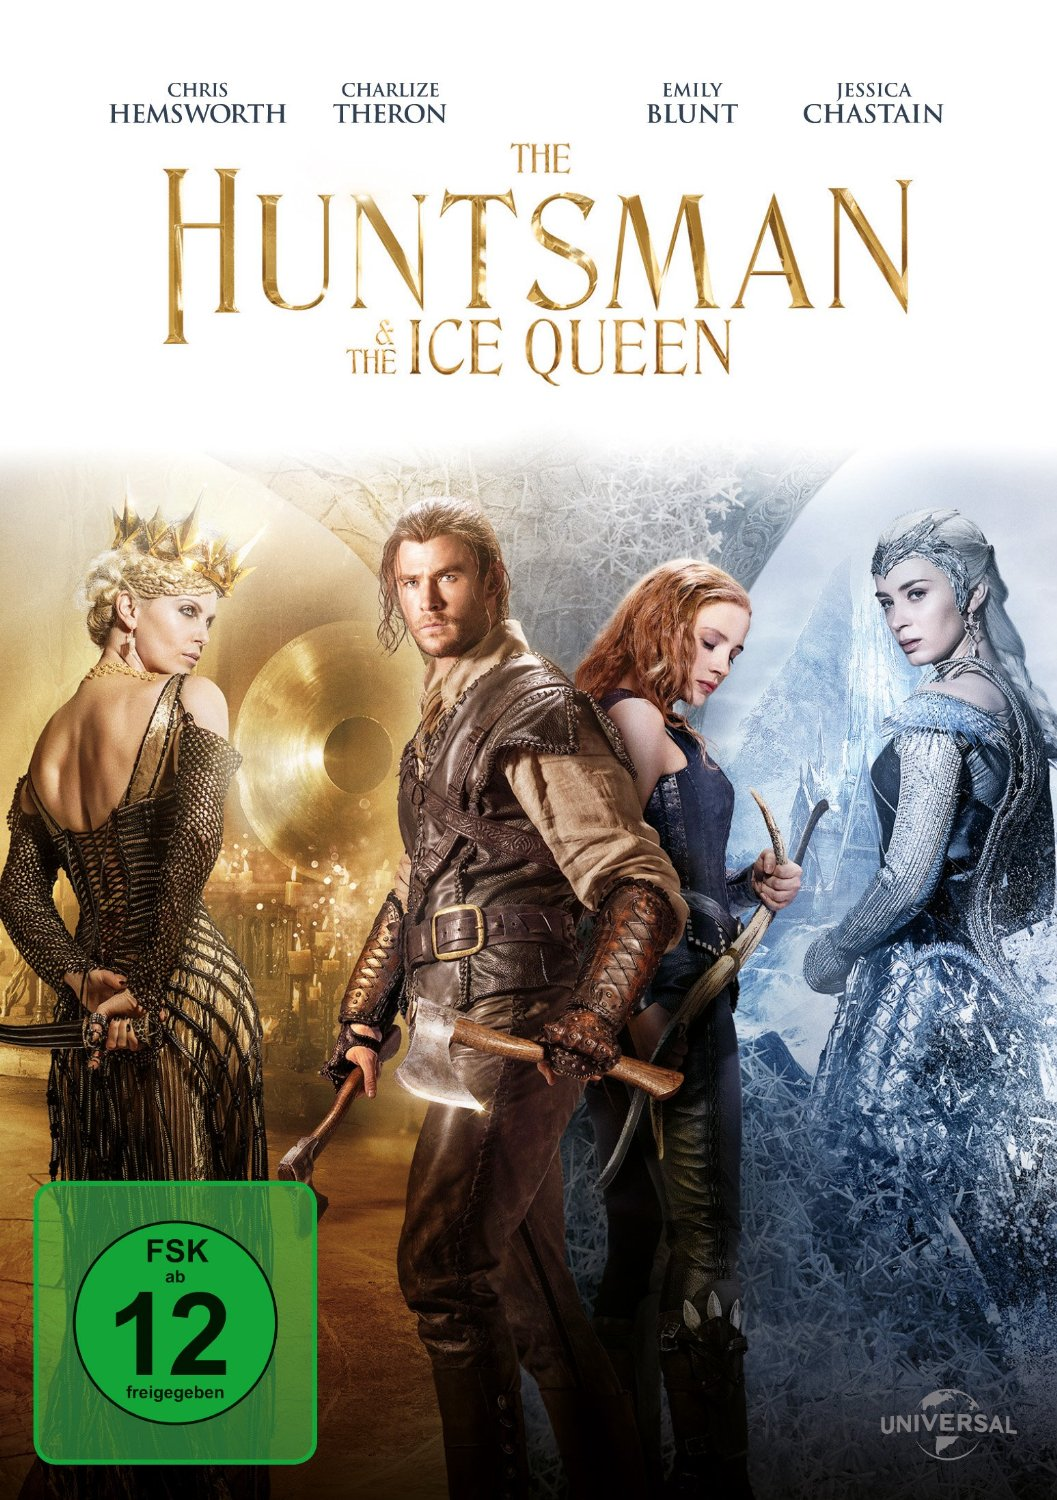 DVD-Cover von The Huntsman & The Ice Queen